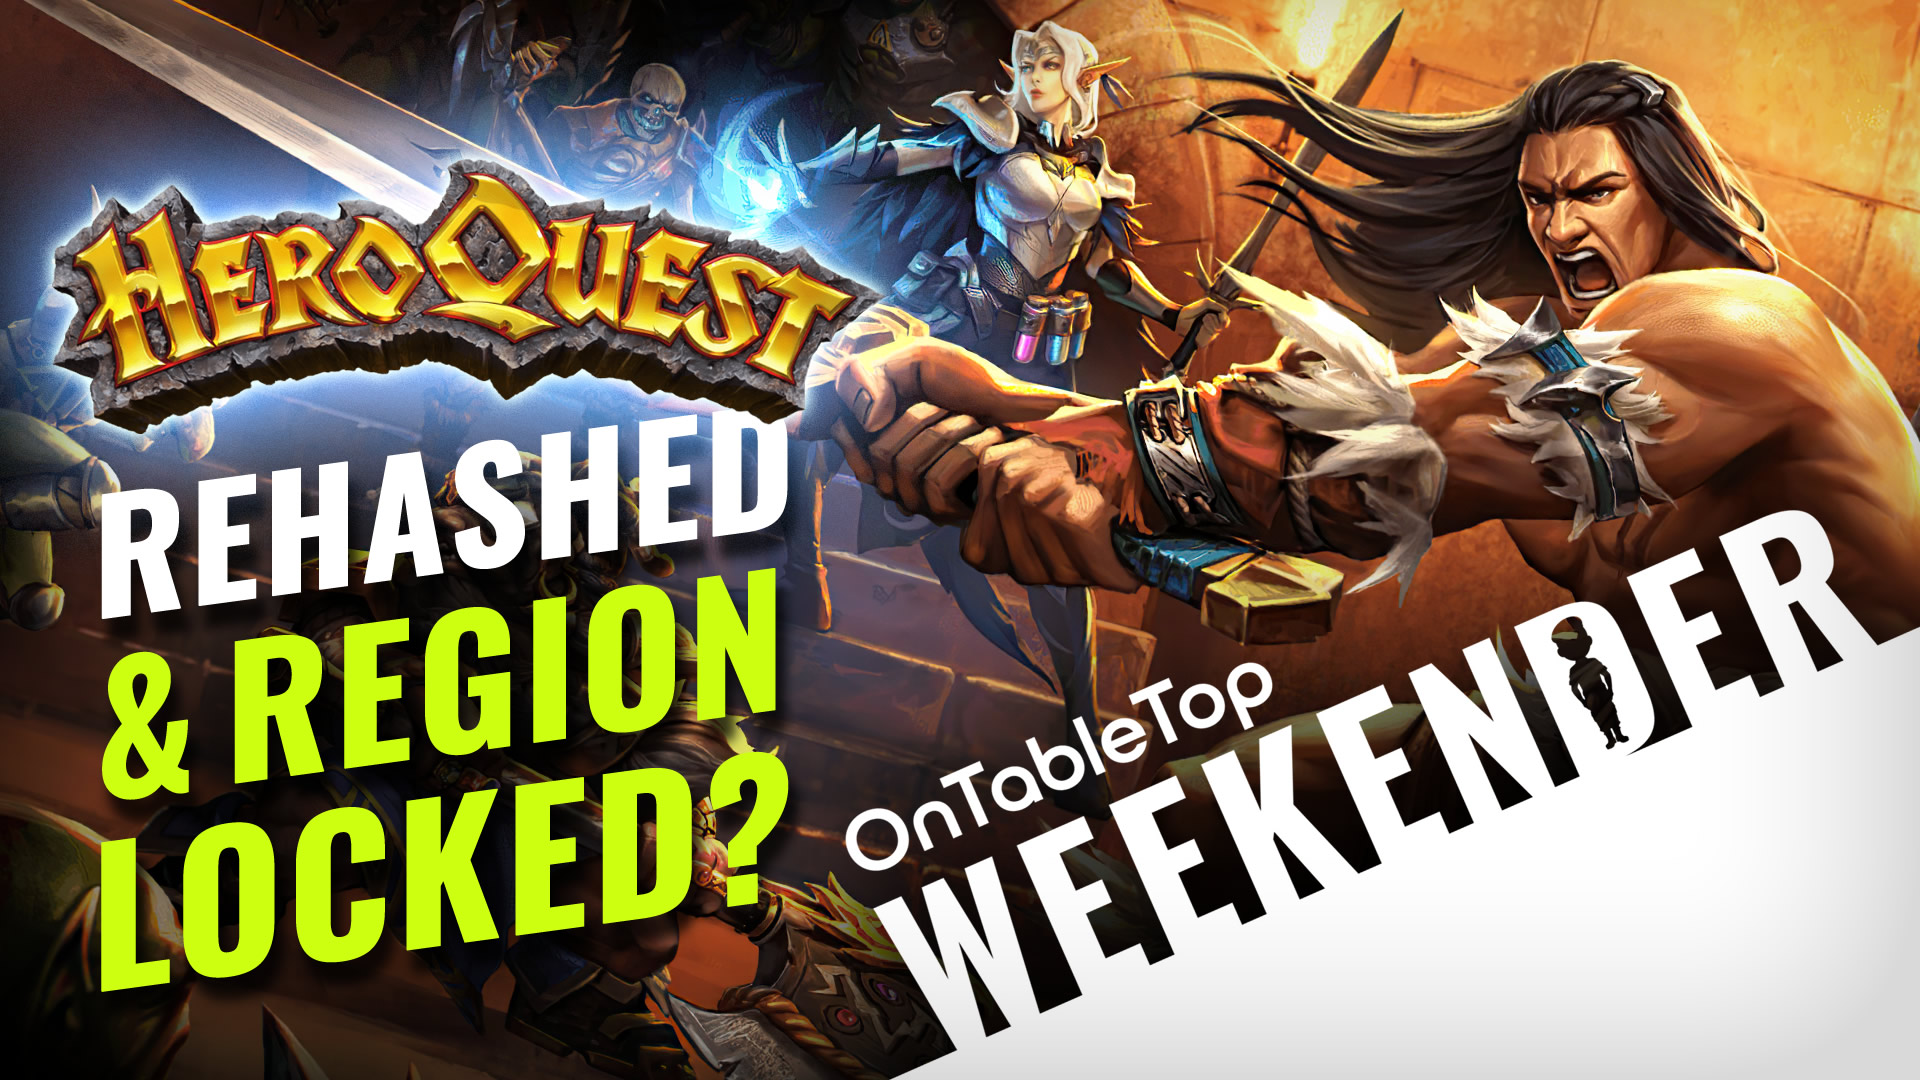 OnTableTop_Weekender_2020_HeroQuest_Rehashed_Rules_Region_Locked